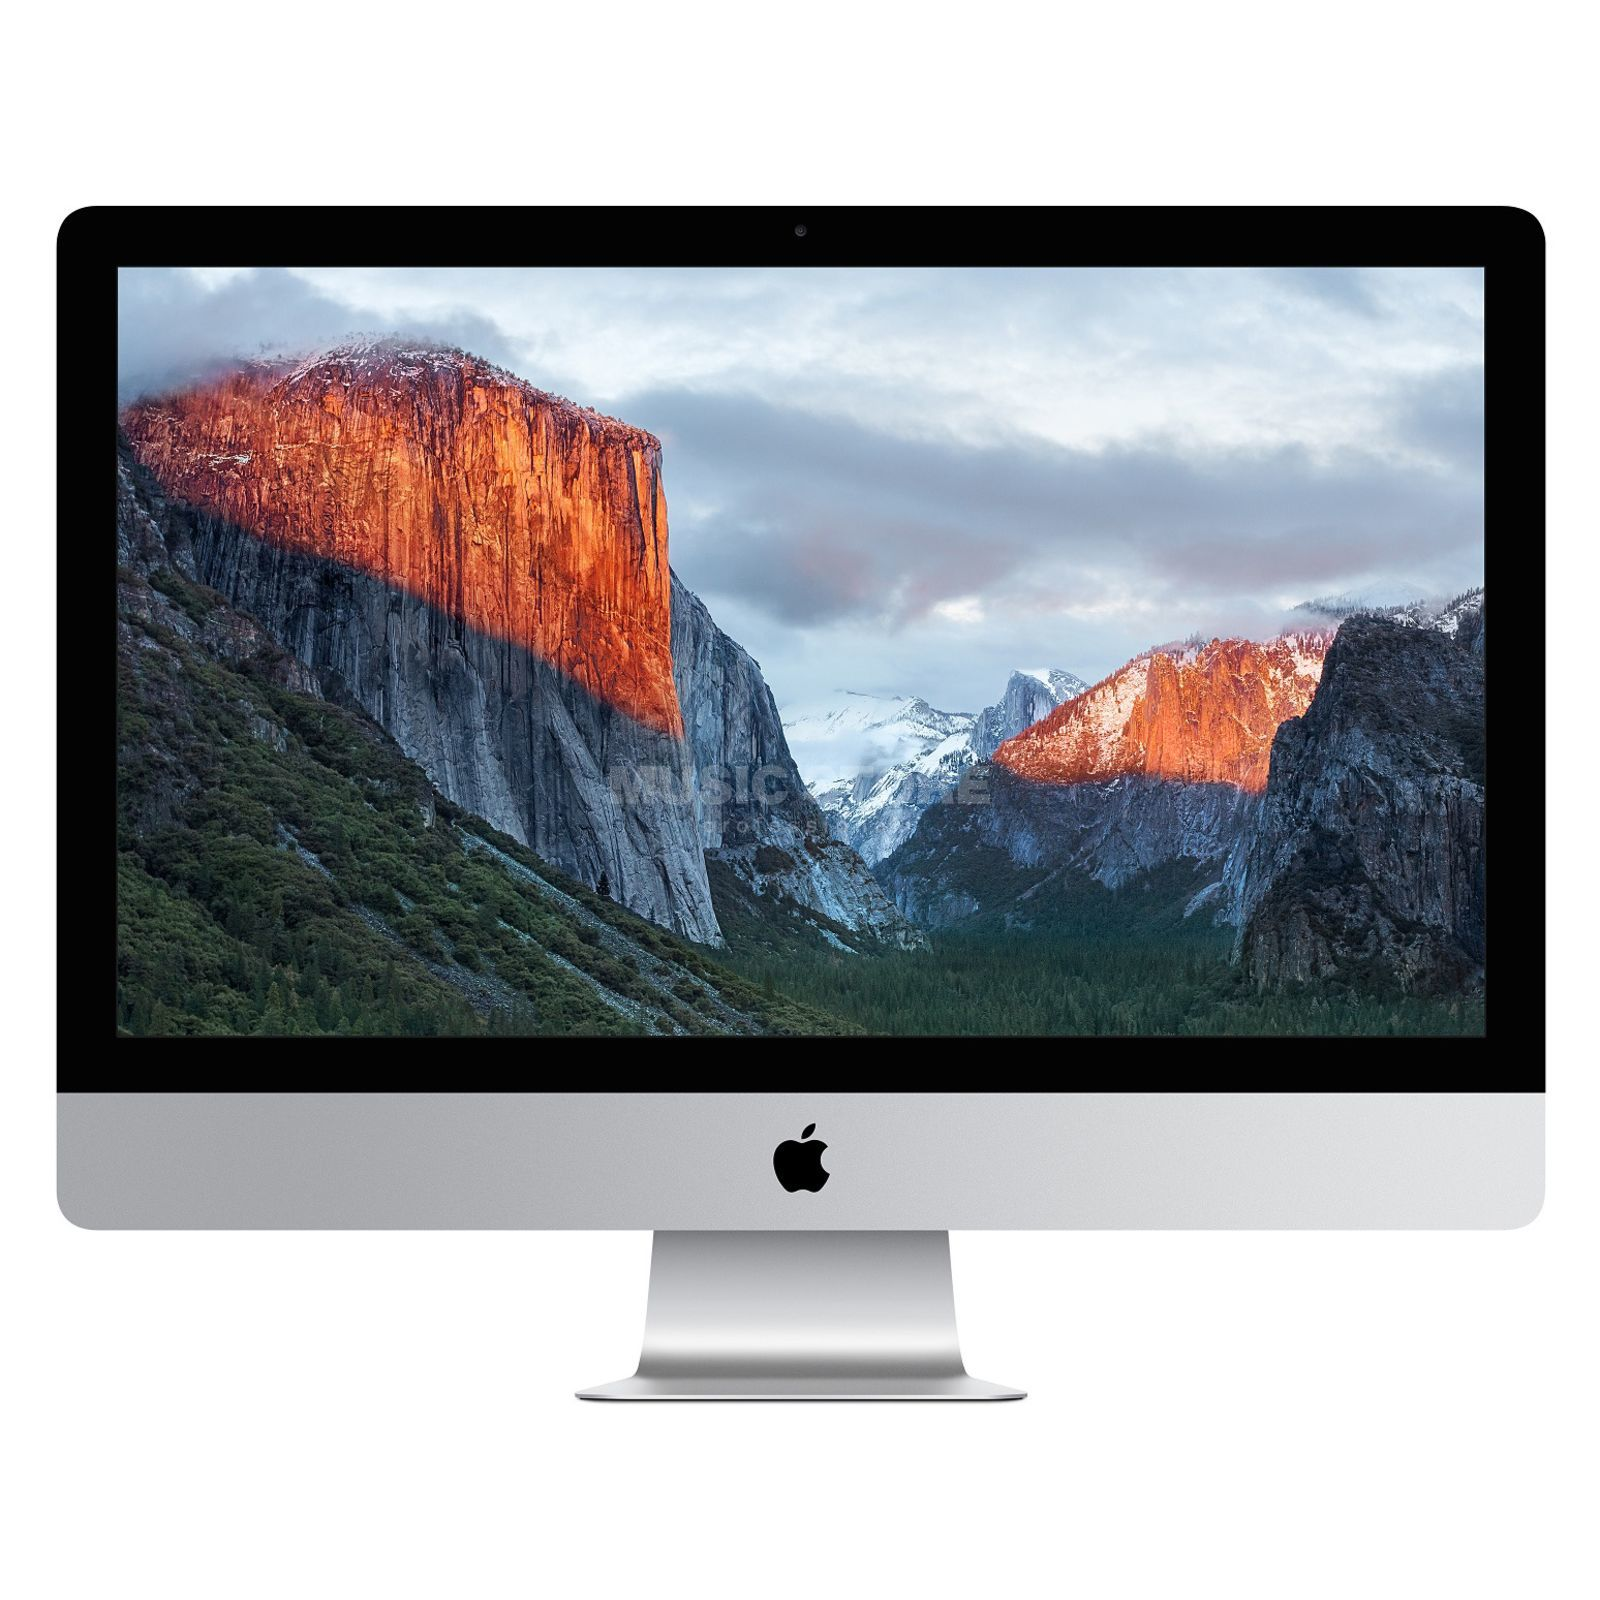 "Apple iMac 21,5"" 4K 3,1 GHz i5 8GB RAM, 1TB, Intel HD 6200 Produktbild"